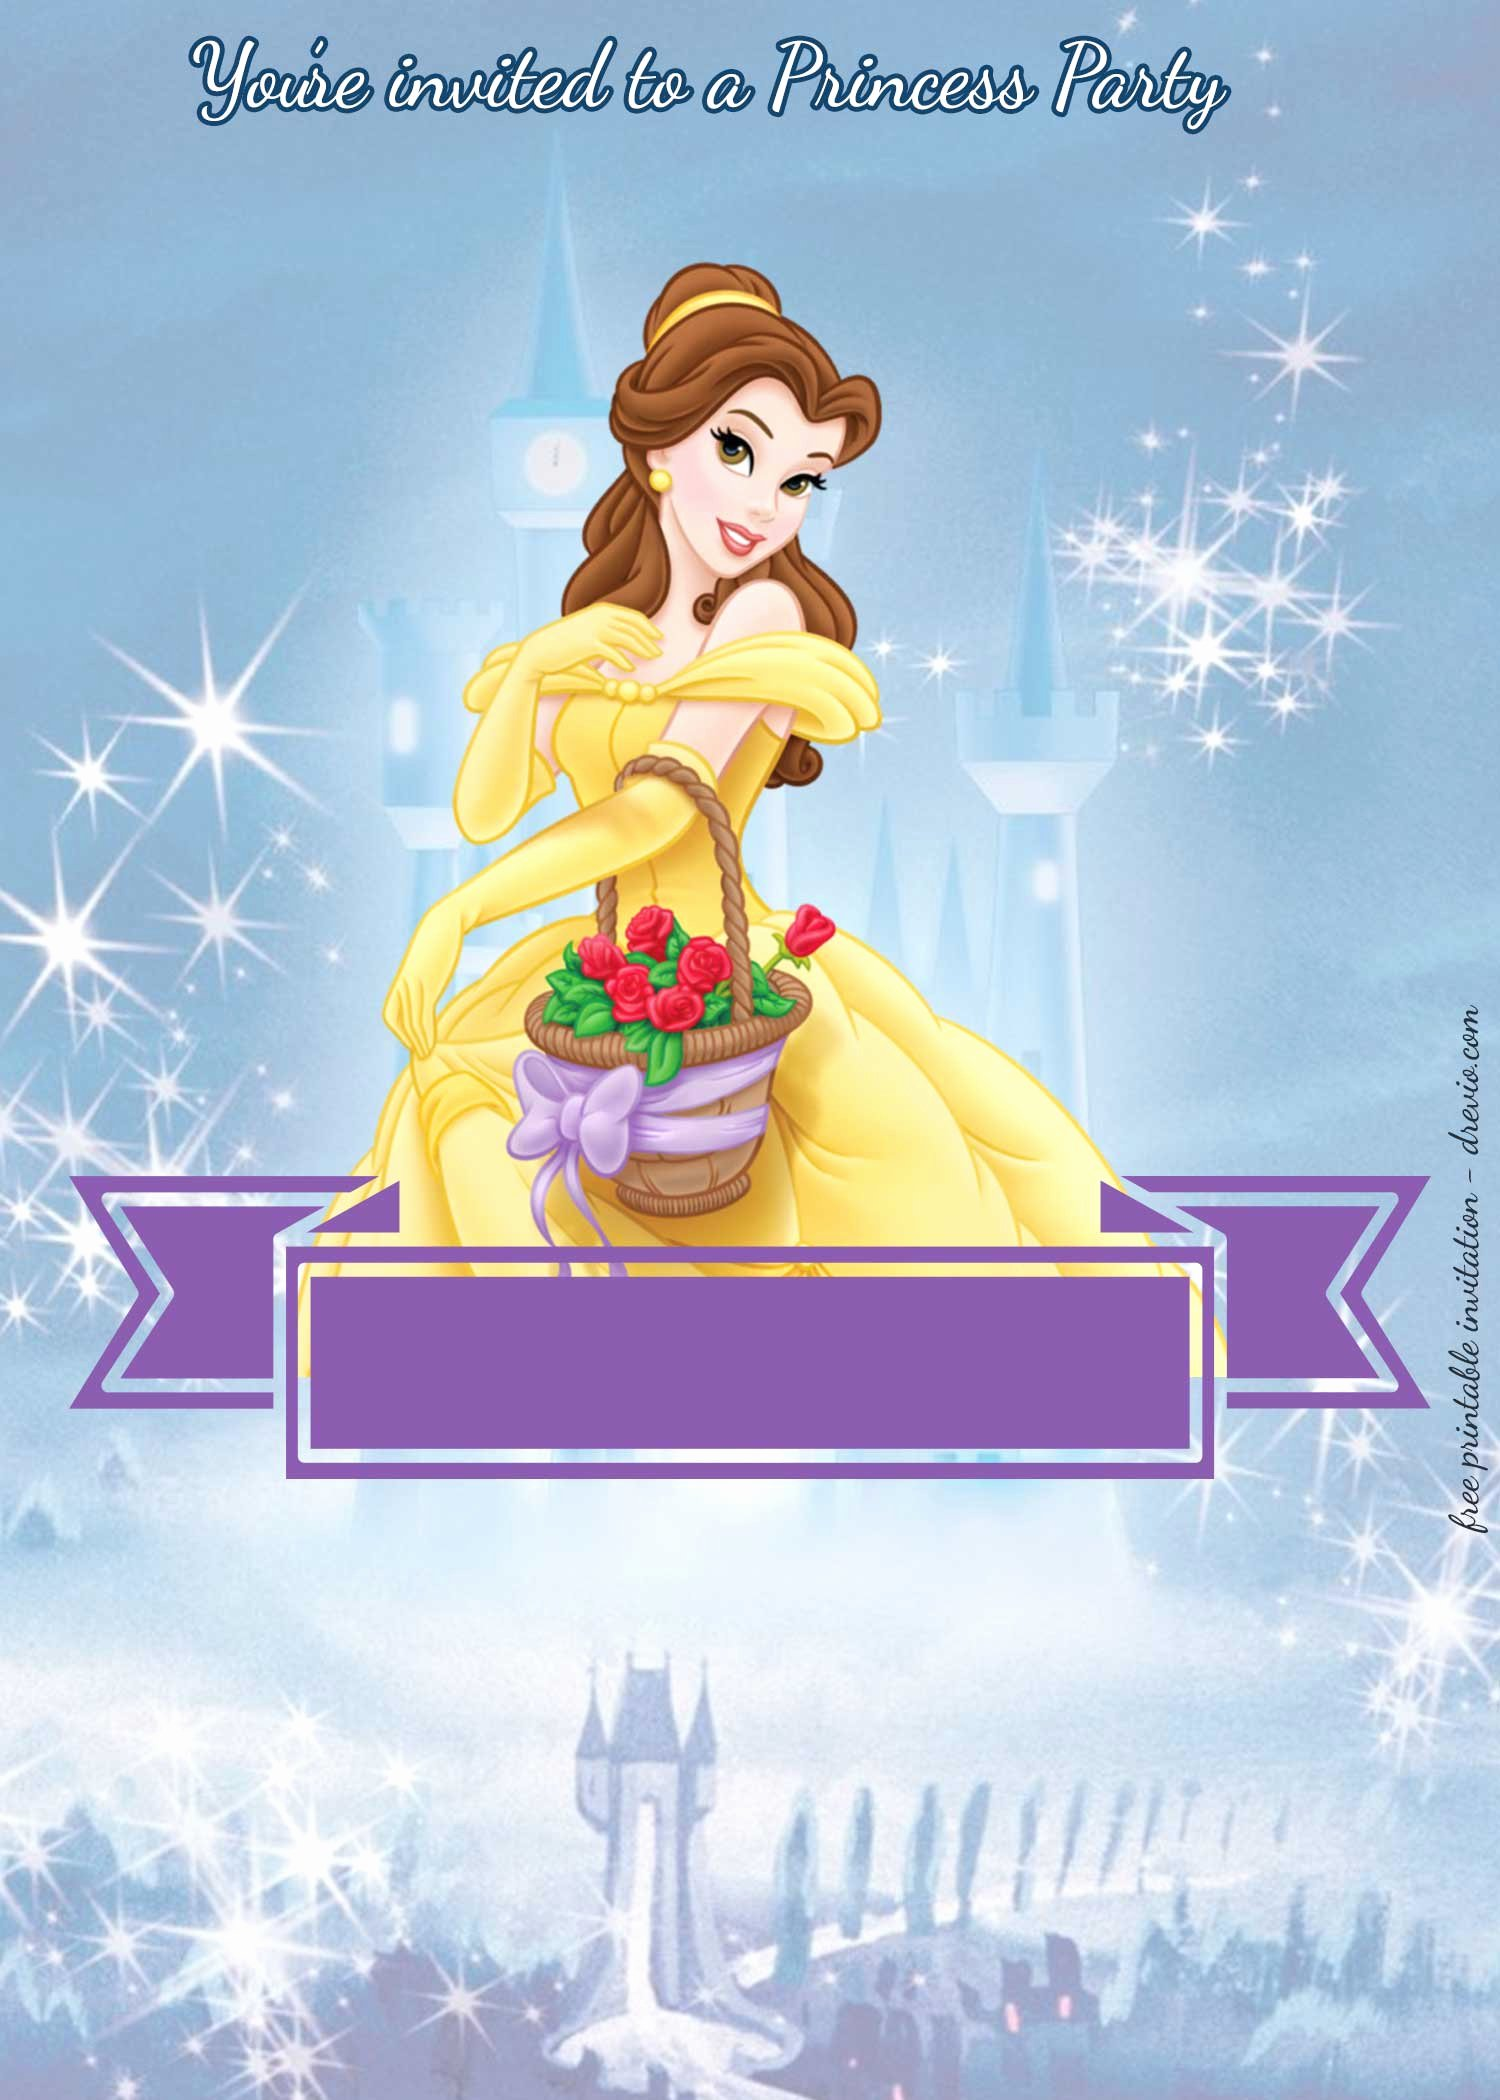 Princess Party Invitation Template Lovely Free Princess Party Birthday Invitation Templates Free Invitation Templates Drevio